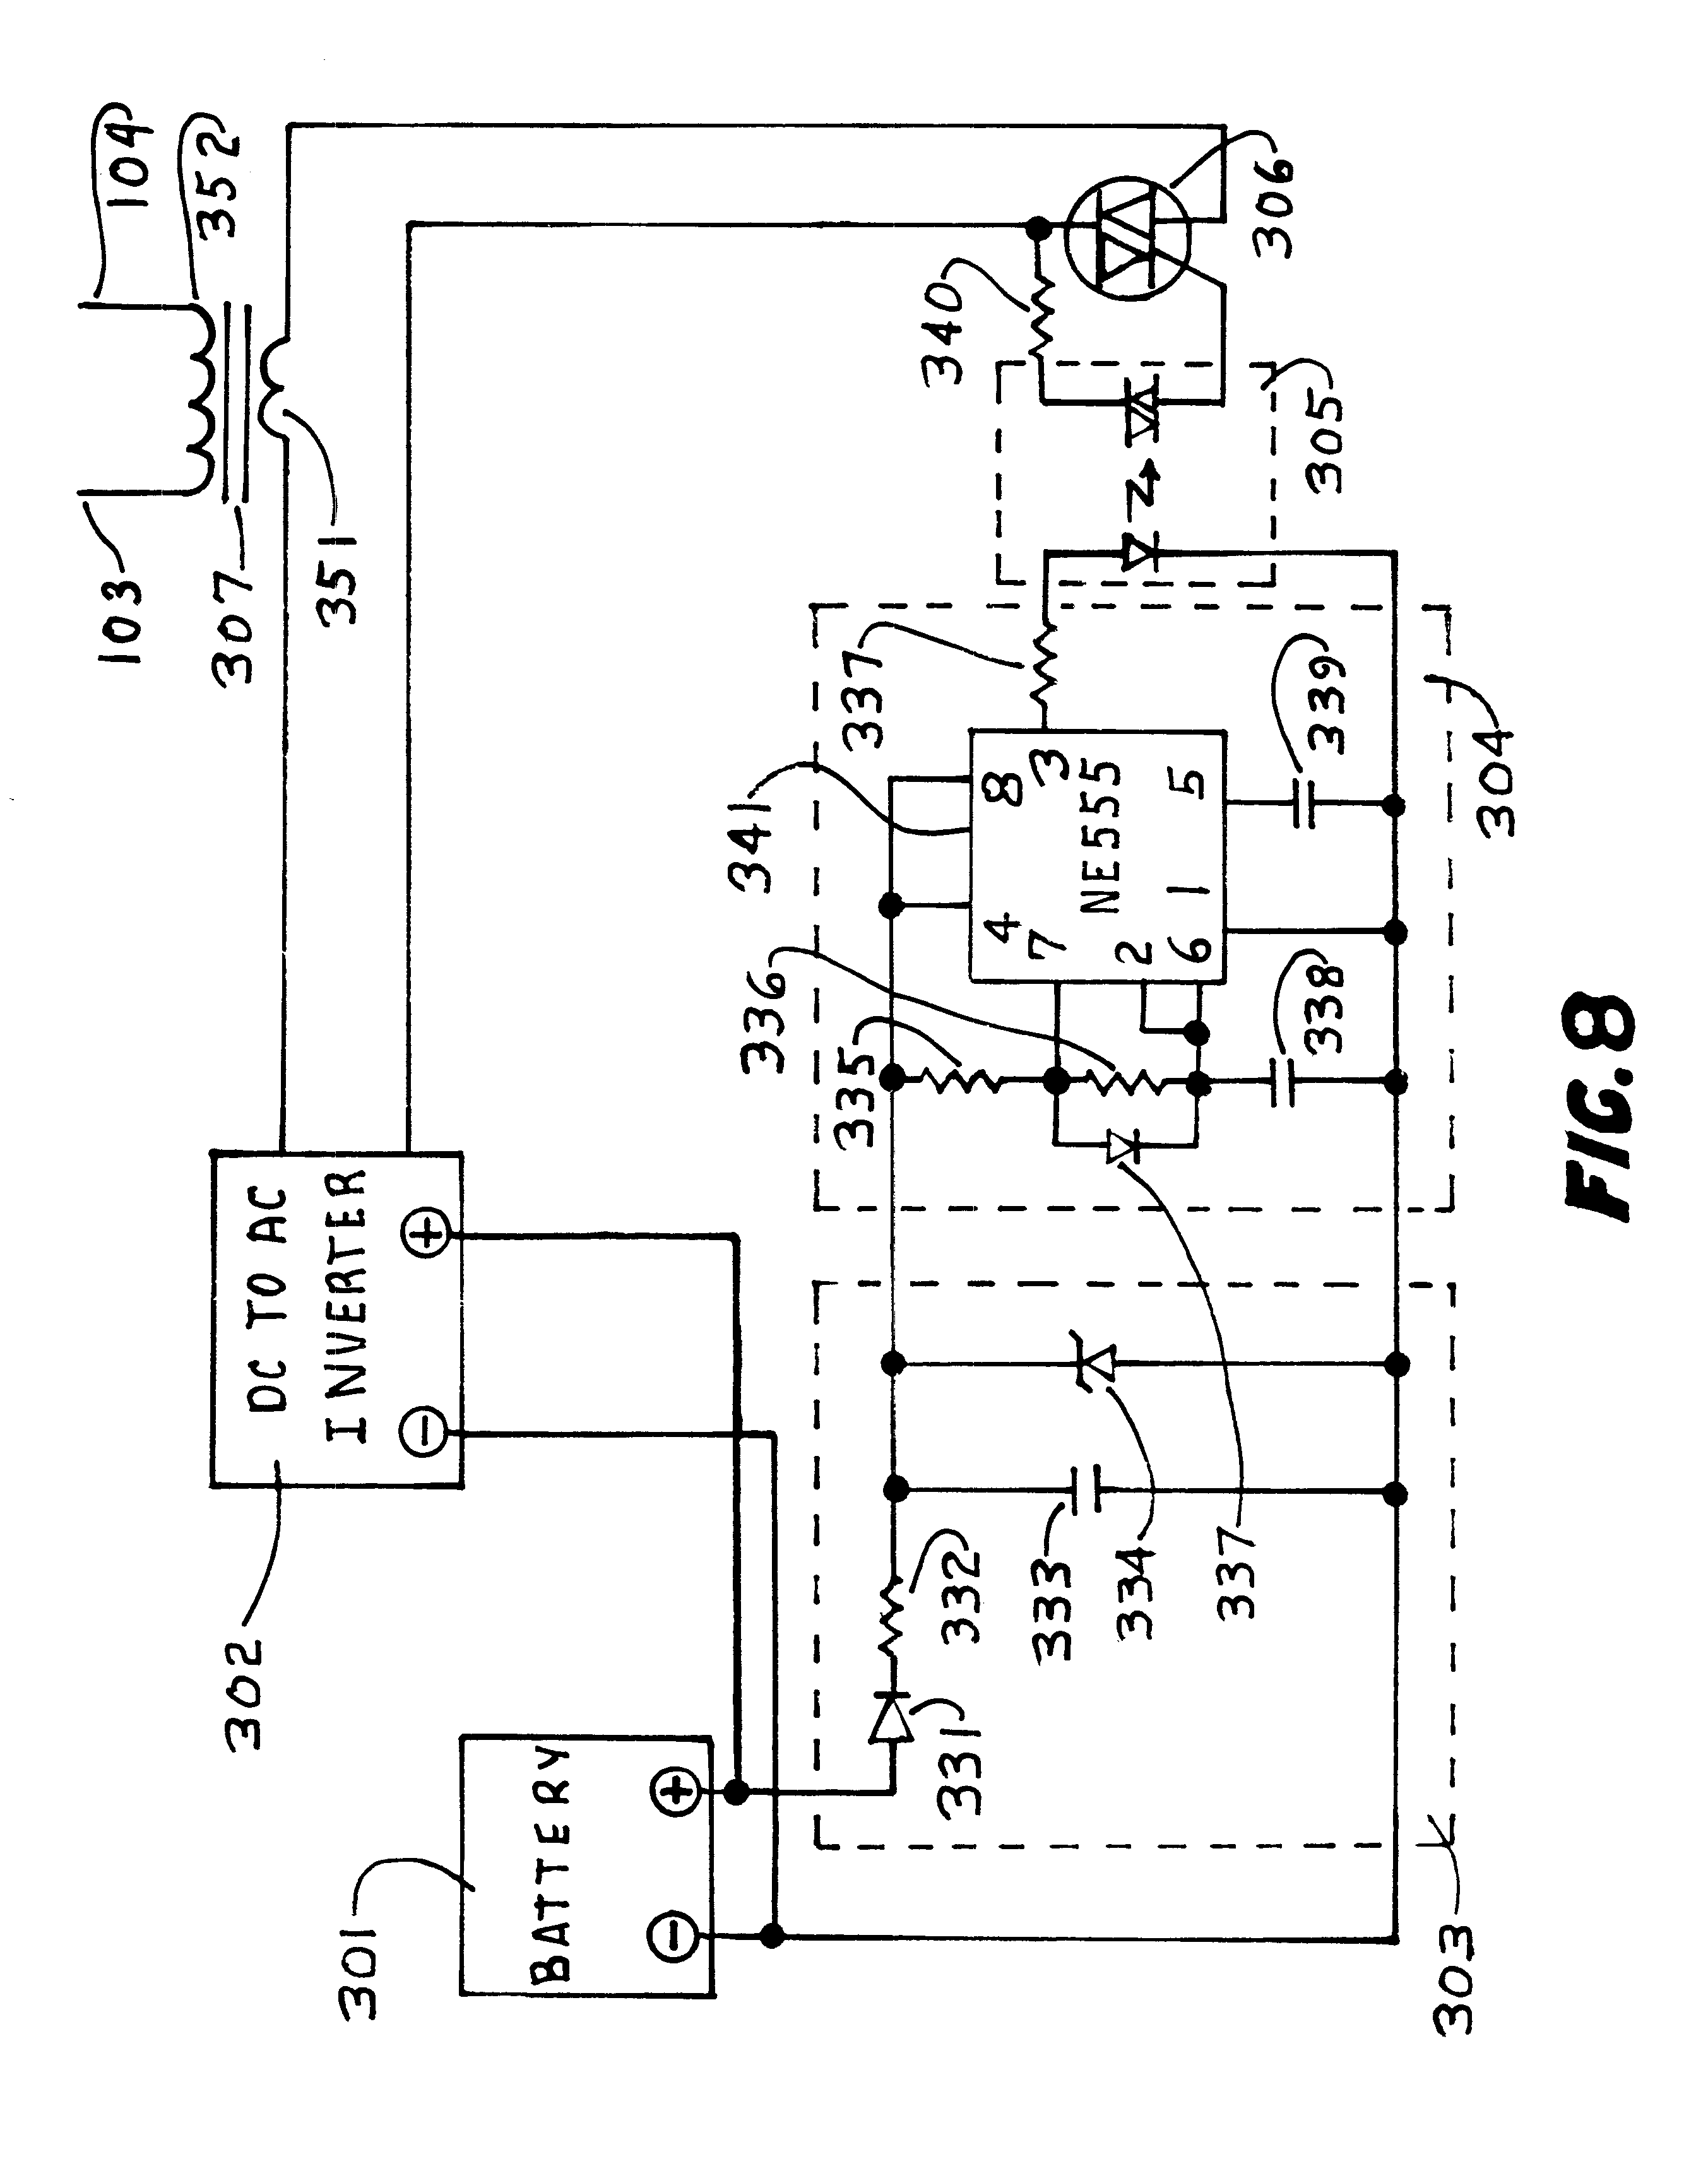 Patent Us6401383 Electronic Apparatus To Attract And Kill Flies In Capacitor How Does This Mosquito Zapper Circuit Work Electrical Drawing